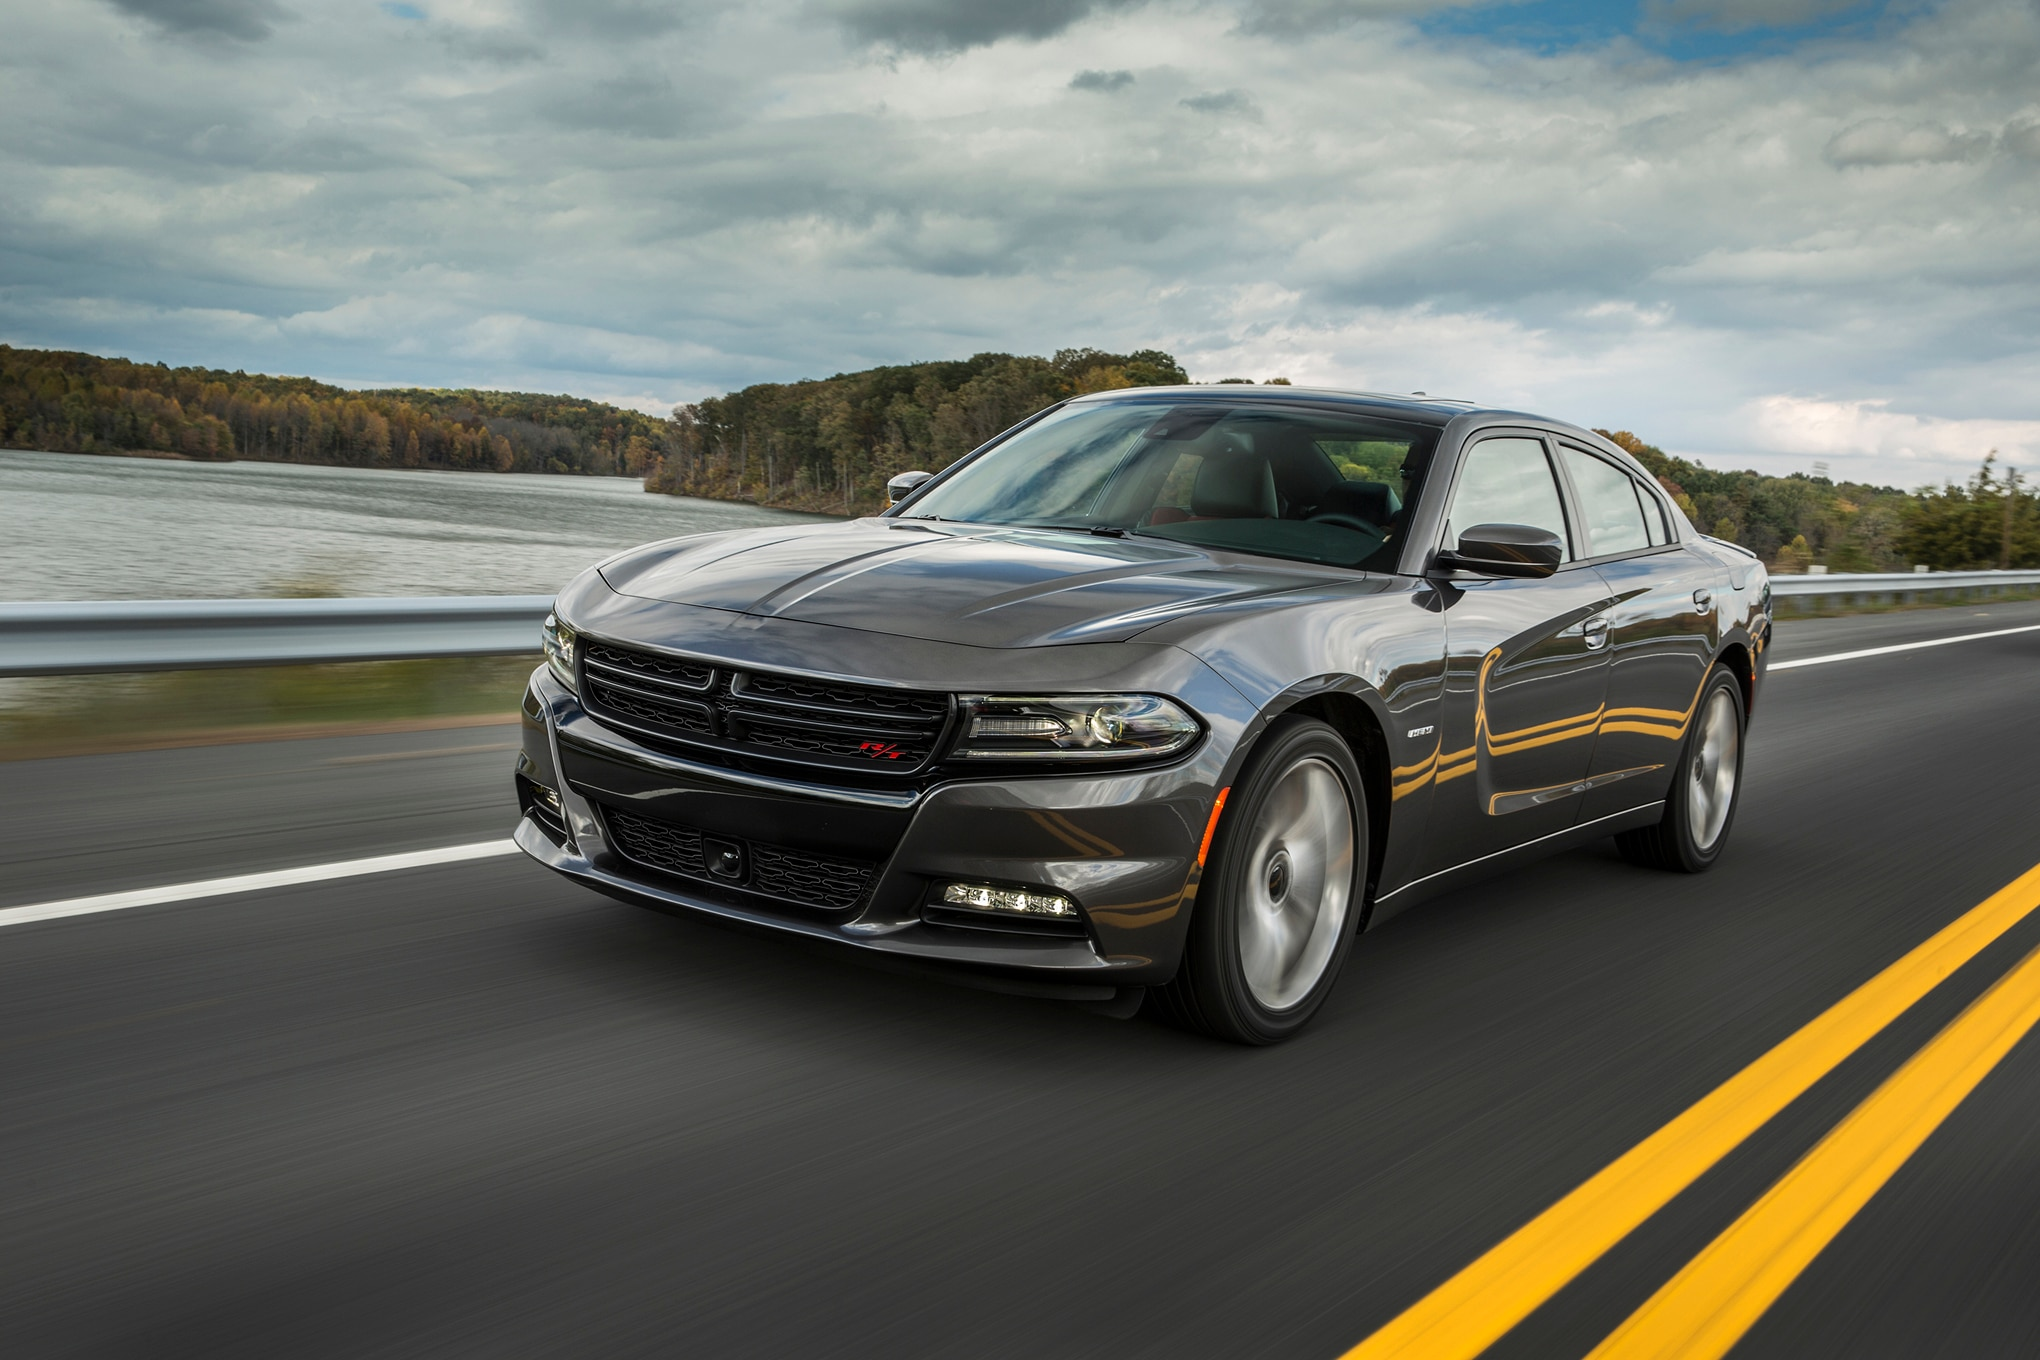 charger dodge rt cars road scat pack track chrysler 2022 chargers piamonte quick take greatest american sports automobiles fiat v8